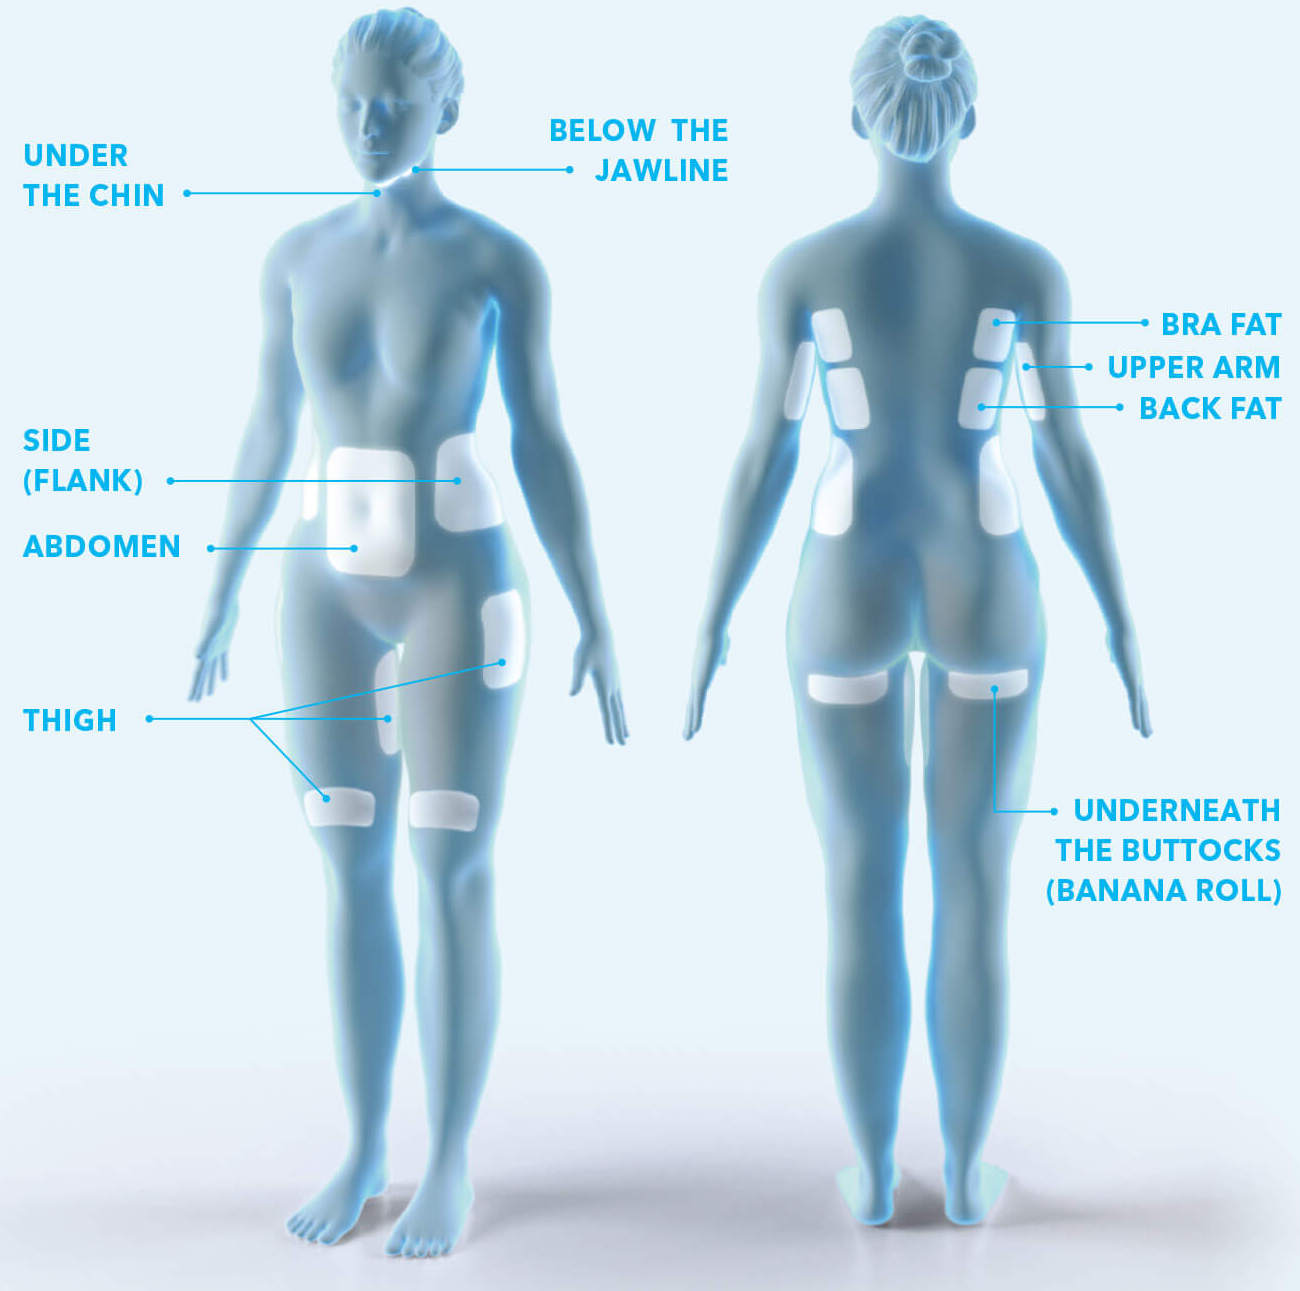 CoolSculpting treatment areas include under the chin, below the jawline, the abdomen, obliques, thighs, bra fat, upper arm, back fat, and underneath the buttock